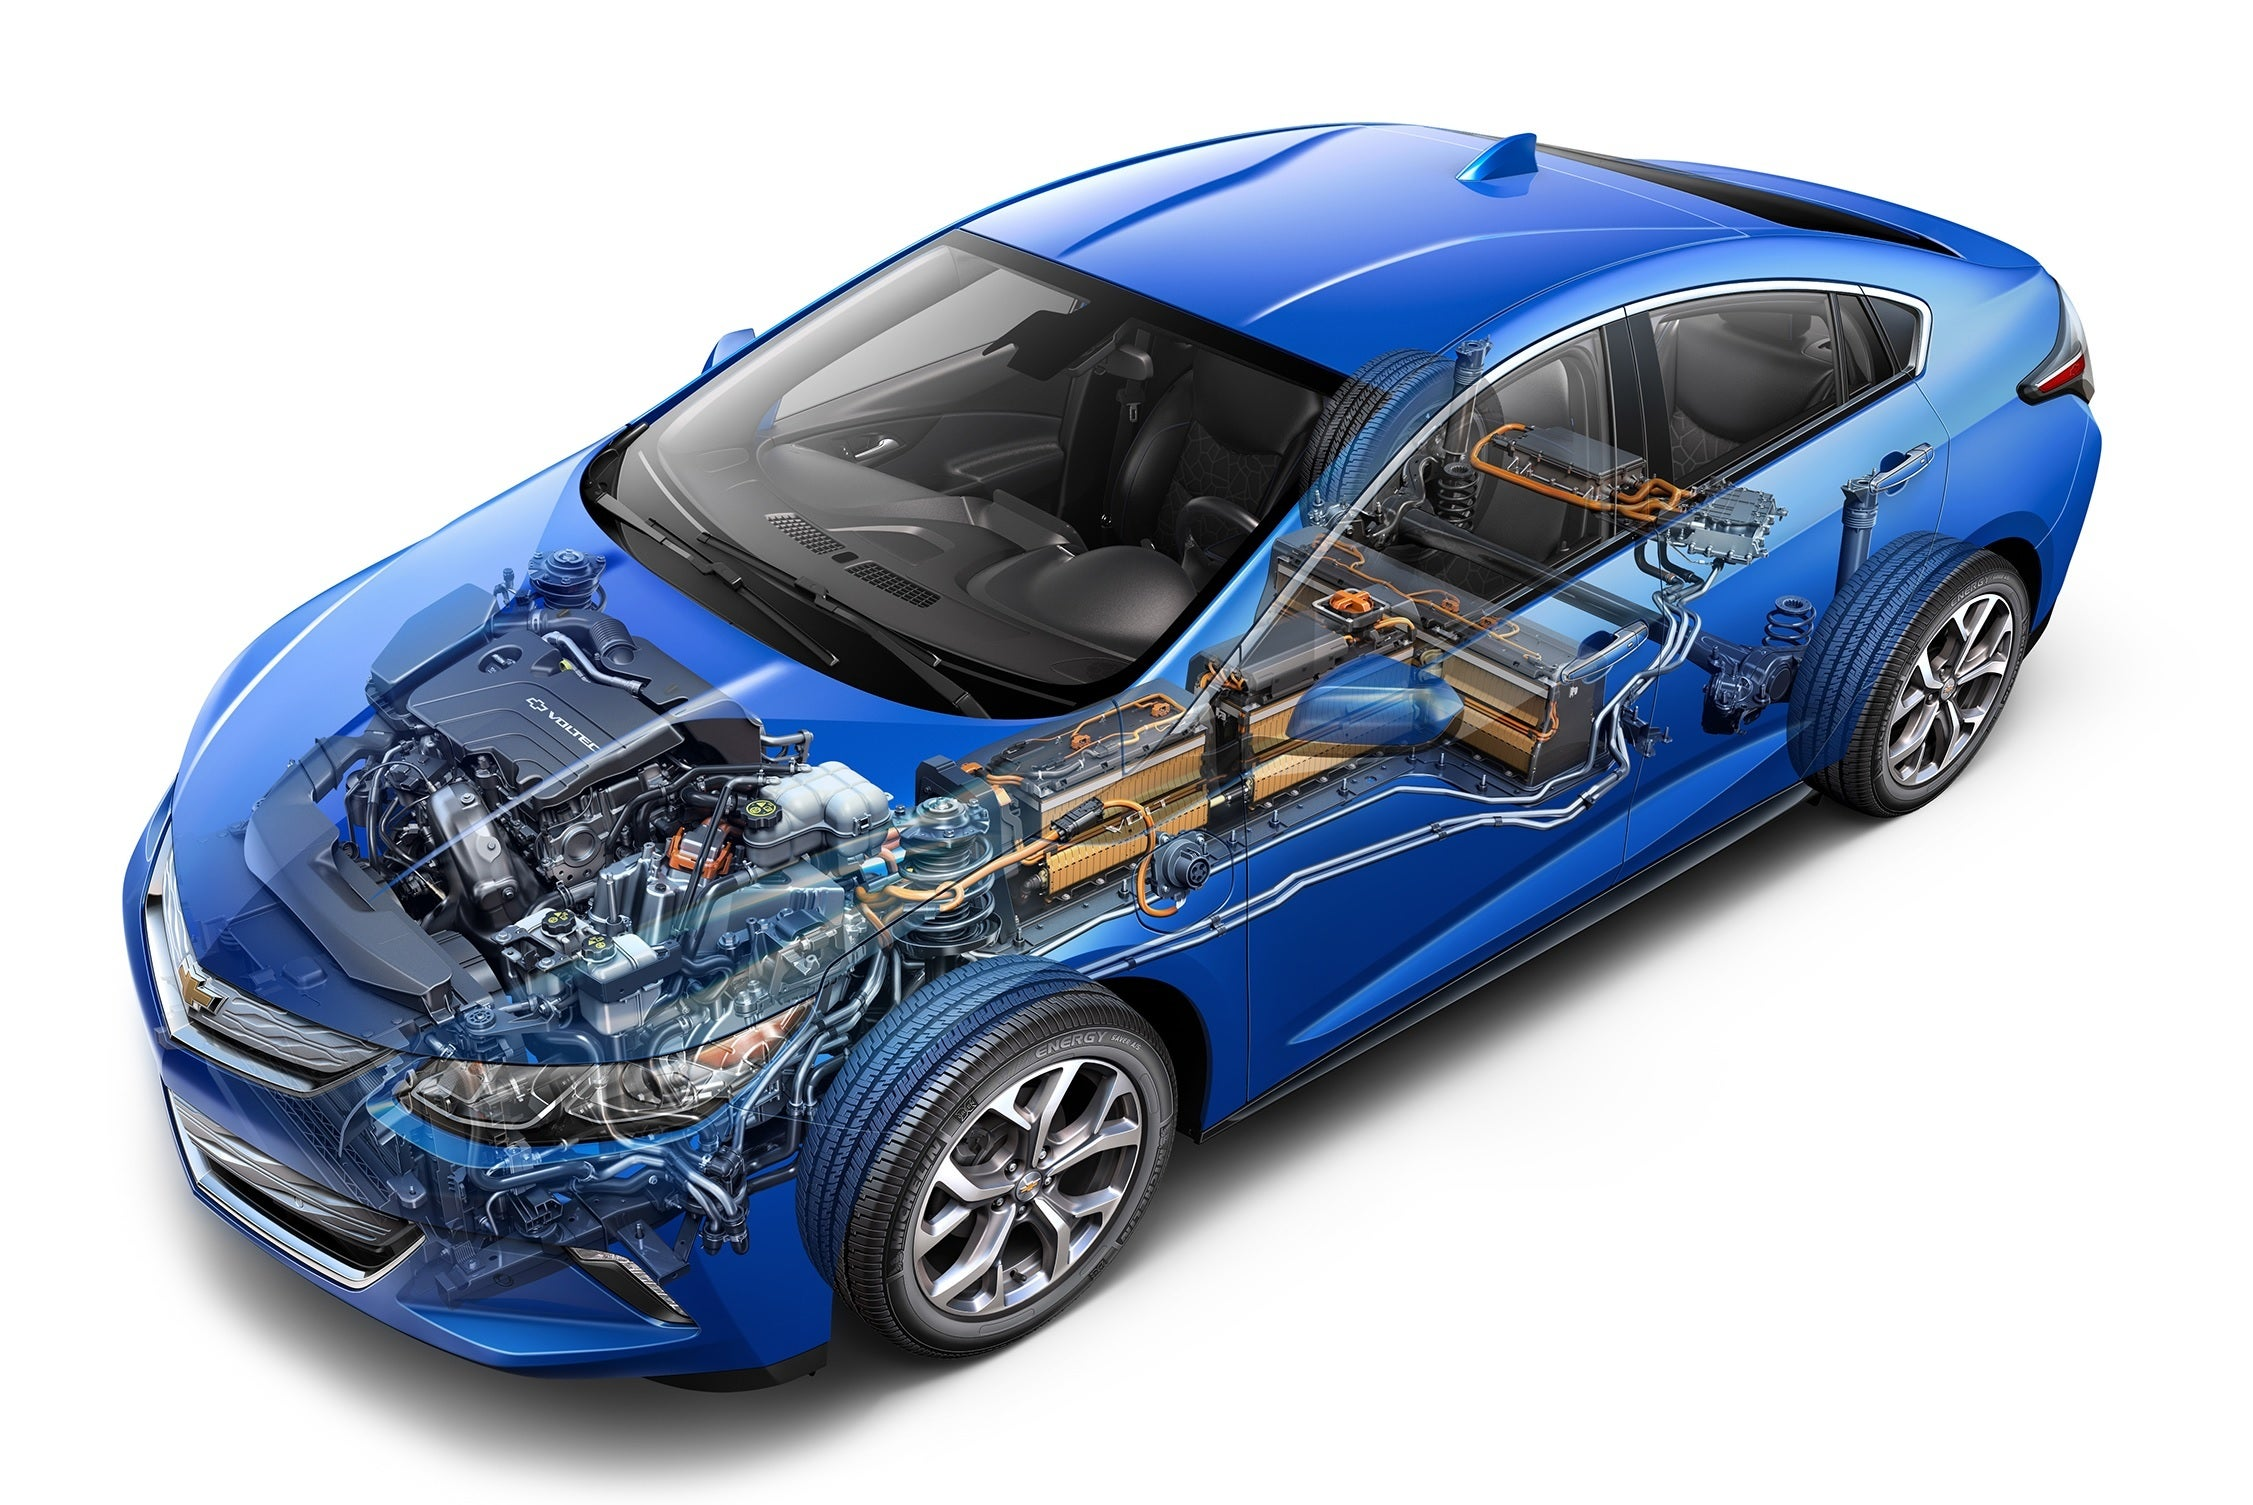 2016 chevy volt review the cult hero of plug in hybrids reaches 2016 chevrolet volt car drivetrain cropped